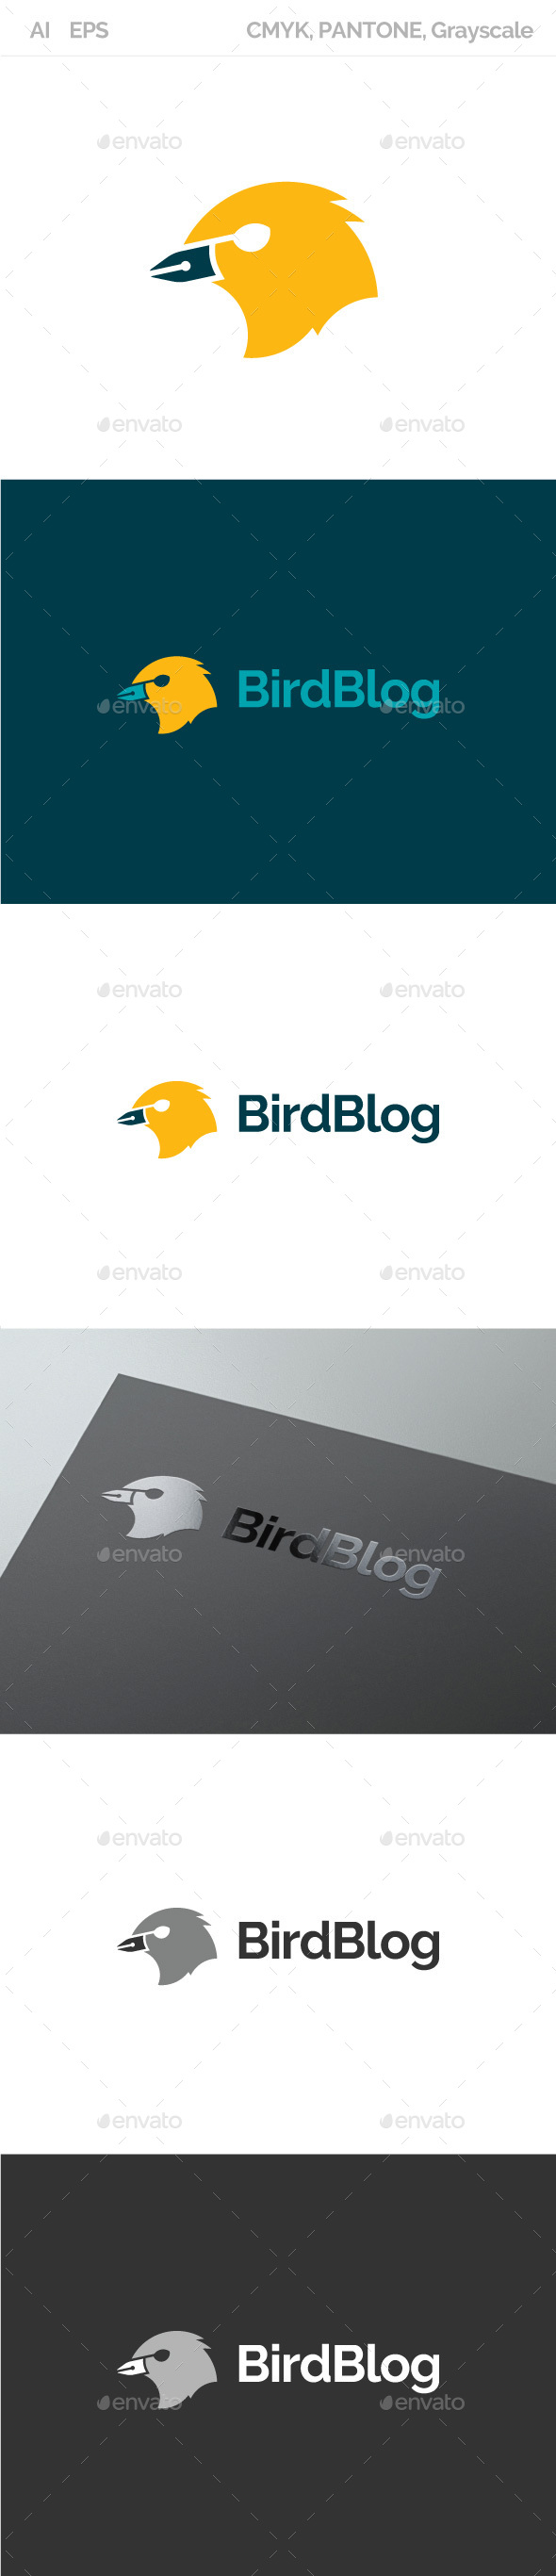 Bird Blog - Animals Logo Templates